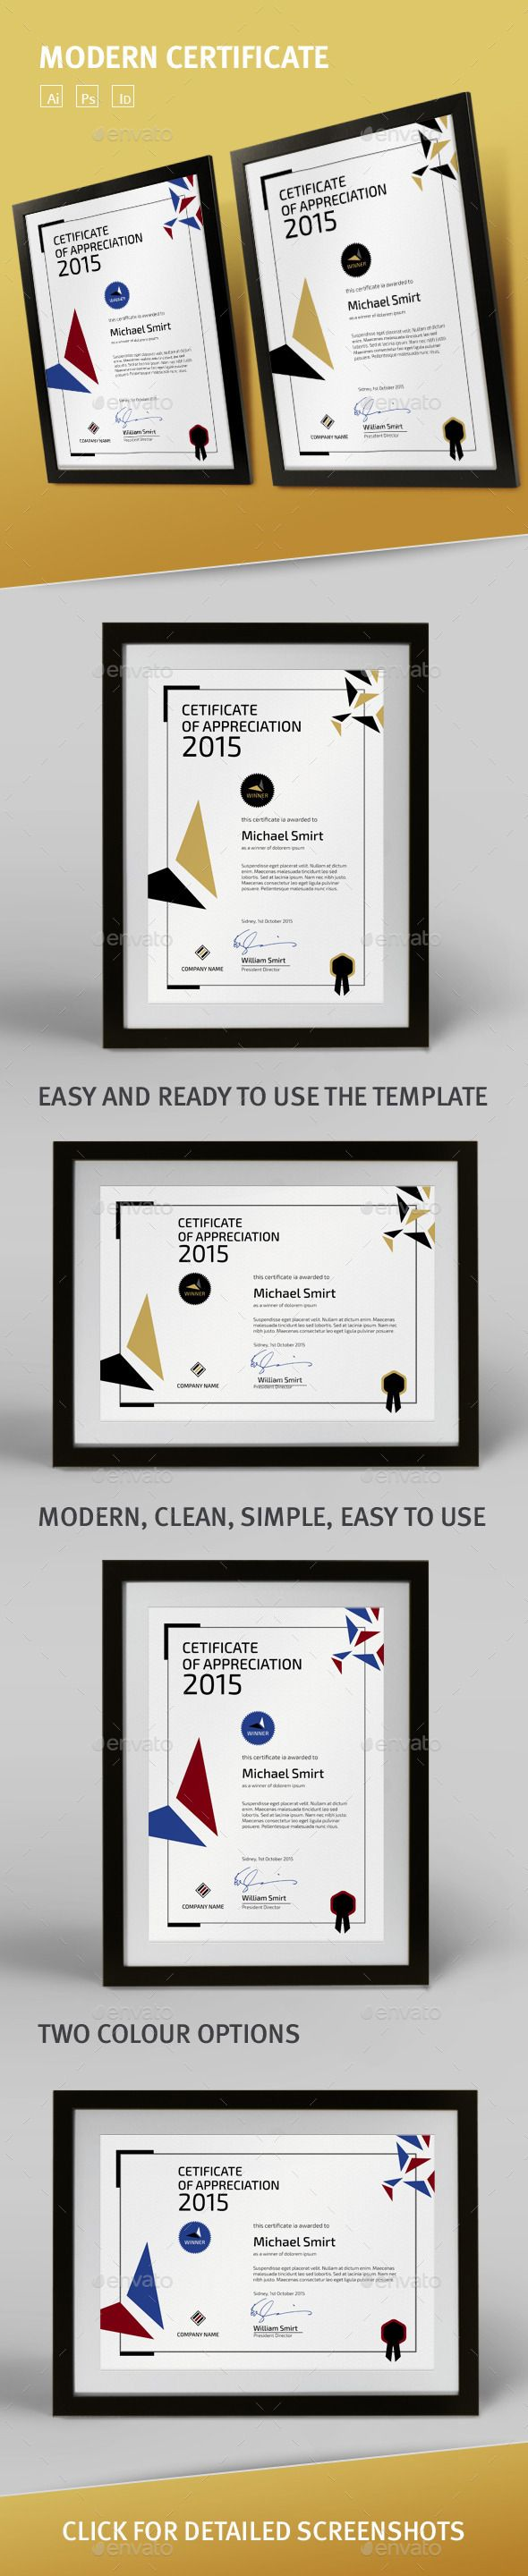 Best 25 certificate templates ideas on pinterest award template modern certificate template xflitez Gallery